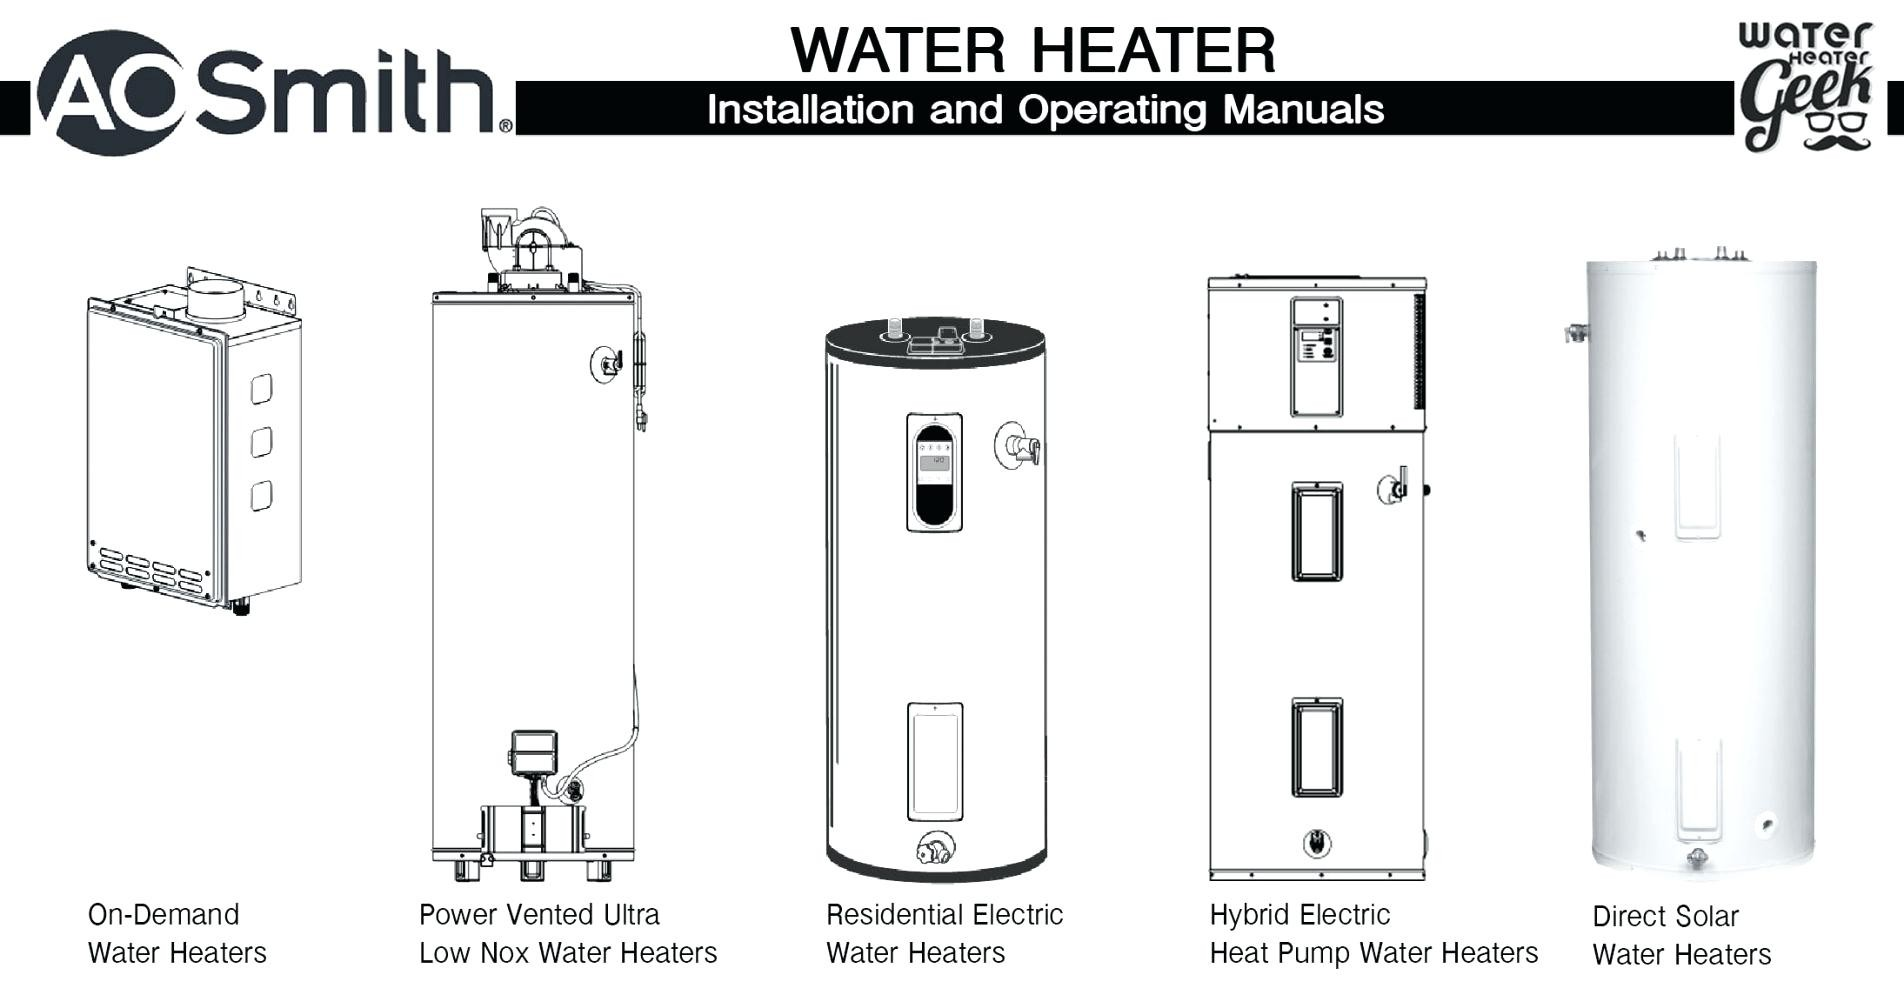 Rheem electric water heater wiring diagram awesome wiring diagram electric water heater installation richmond wiring diagram whirlpool manual ccuart Choice Image